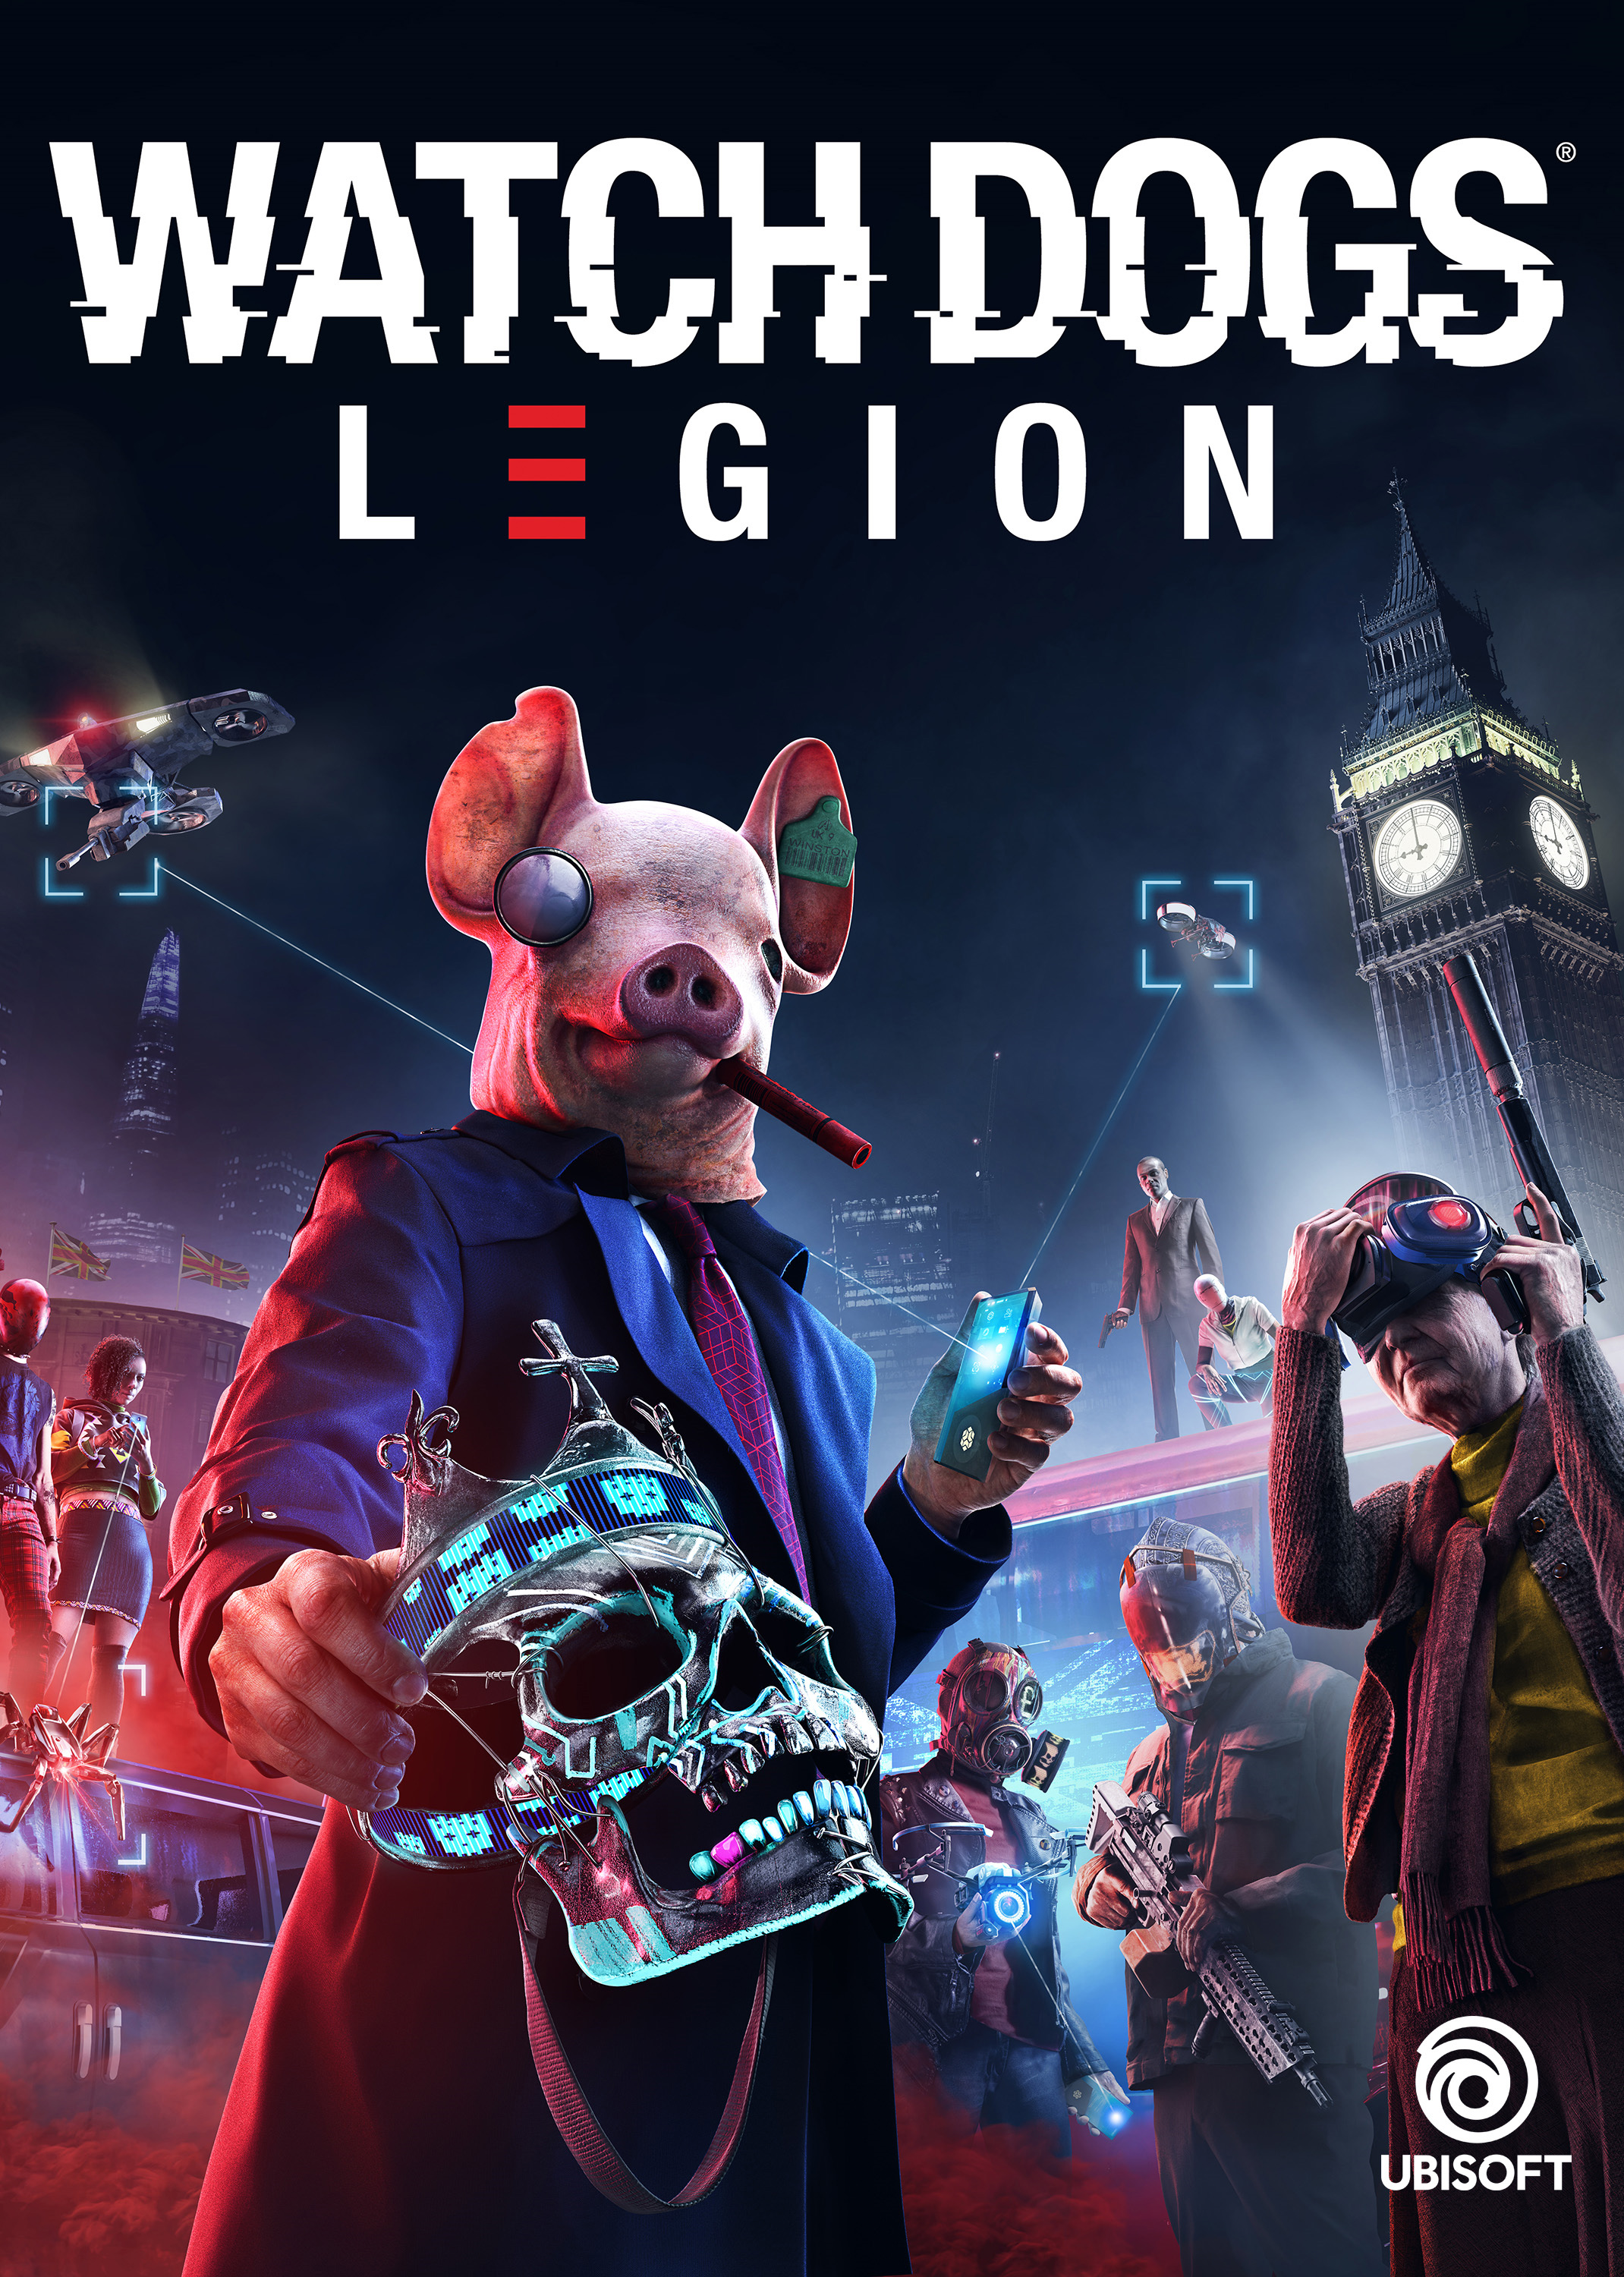 Ps4 Free Games March 2020.Watch Dogs Legion Video Game 2020 Imdb